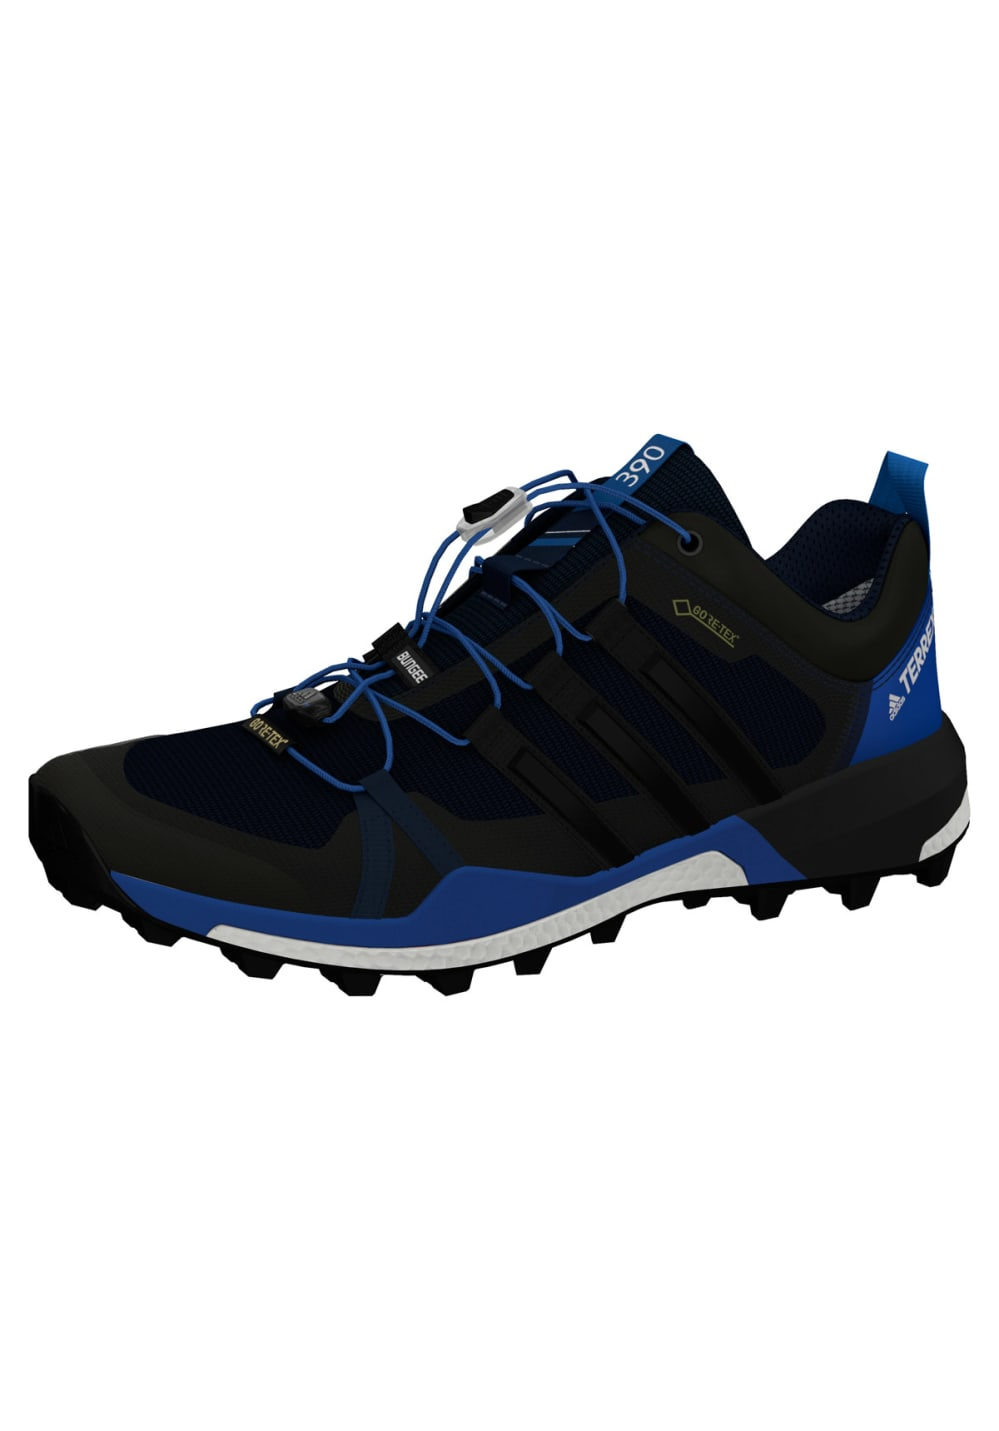 b0632fbf6a0df0 ... adidas TERREX Terrex Skychaser Gtx - Running shoes for Men - Blue. Back  to Overview. -50%